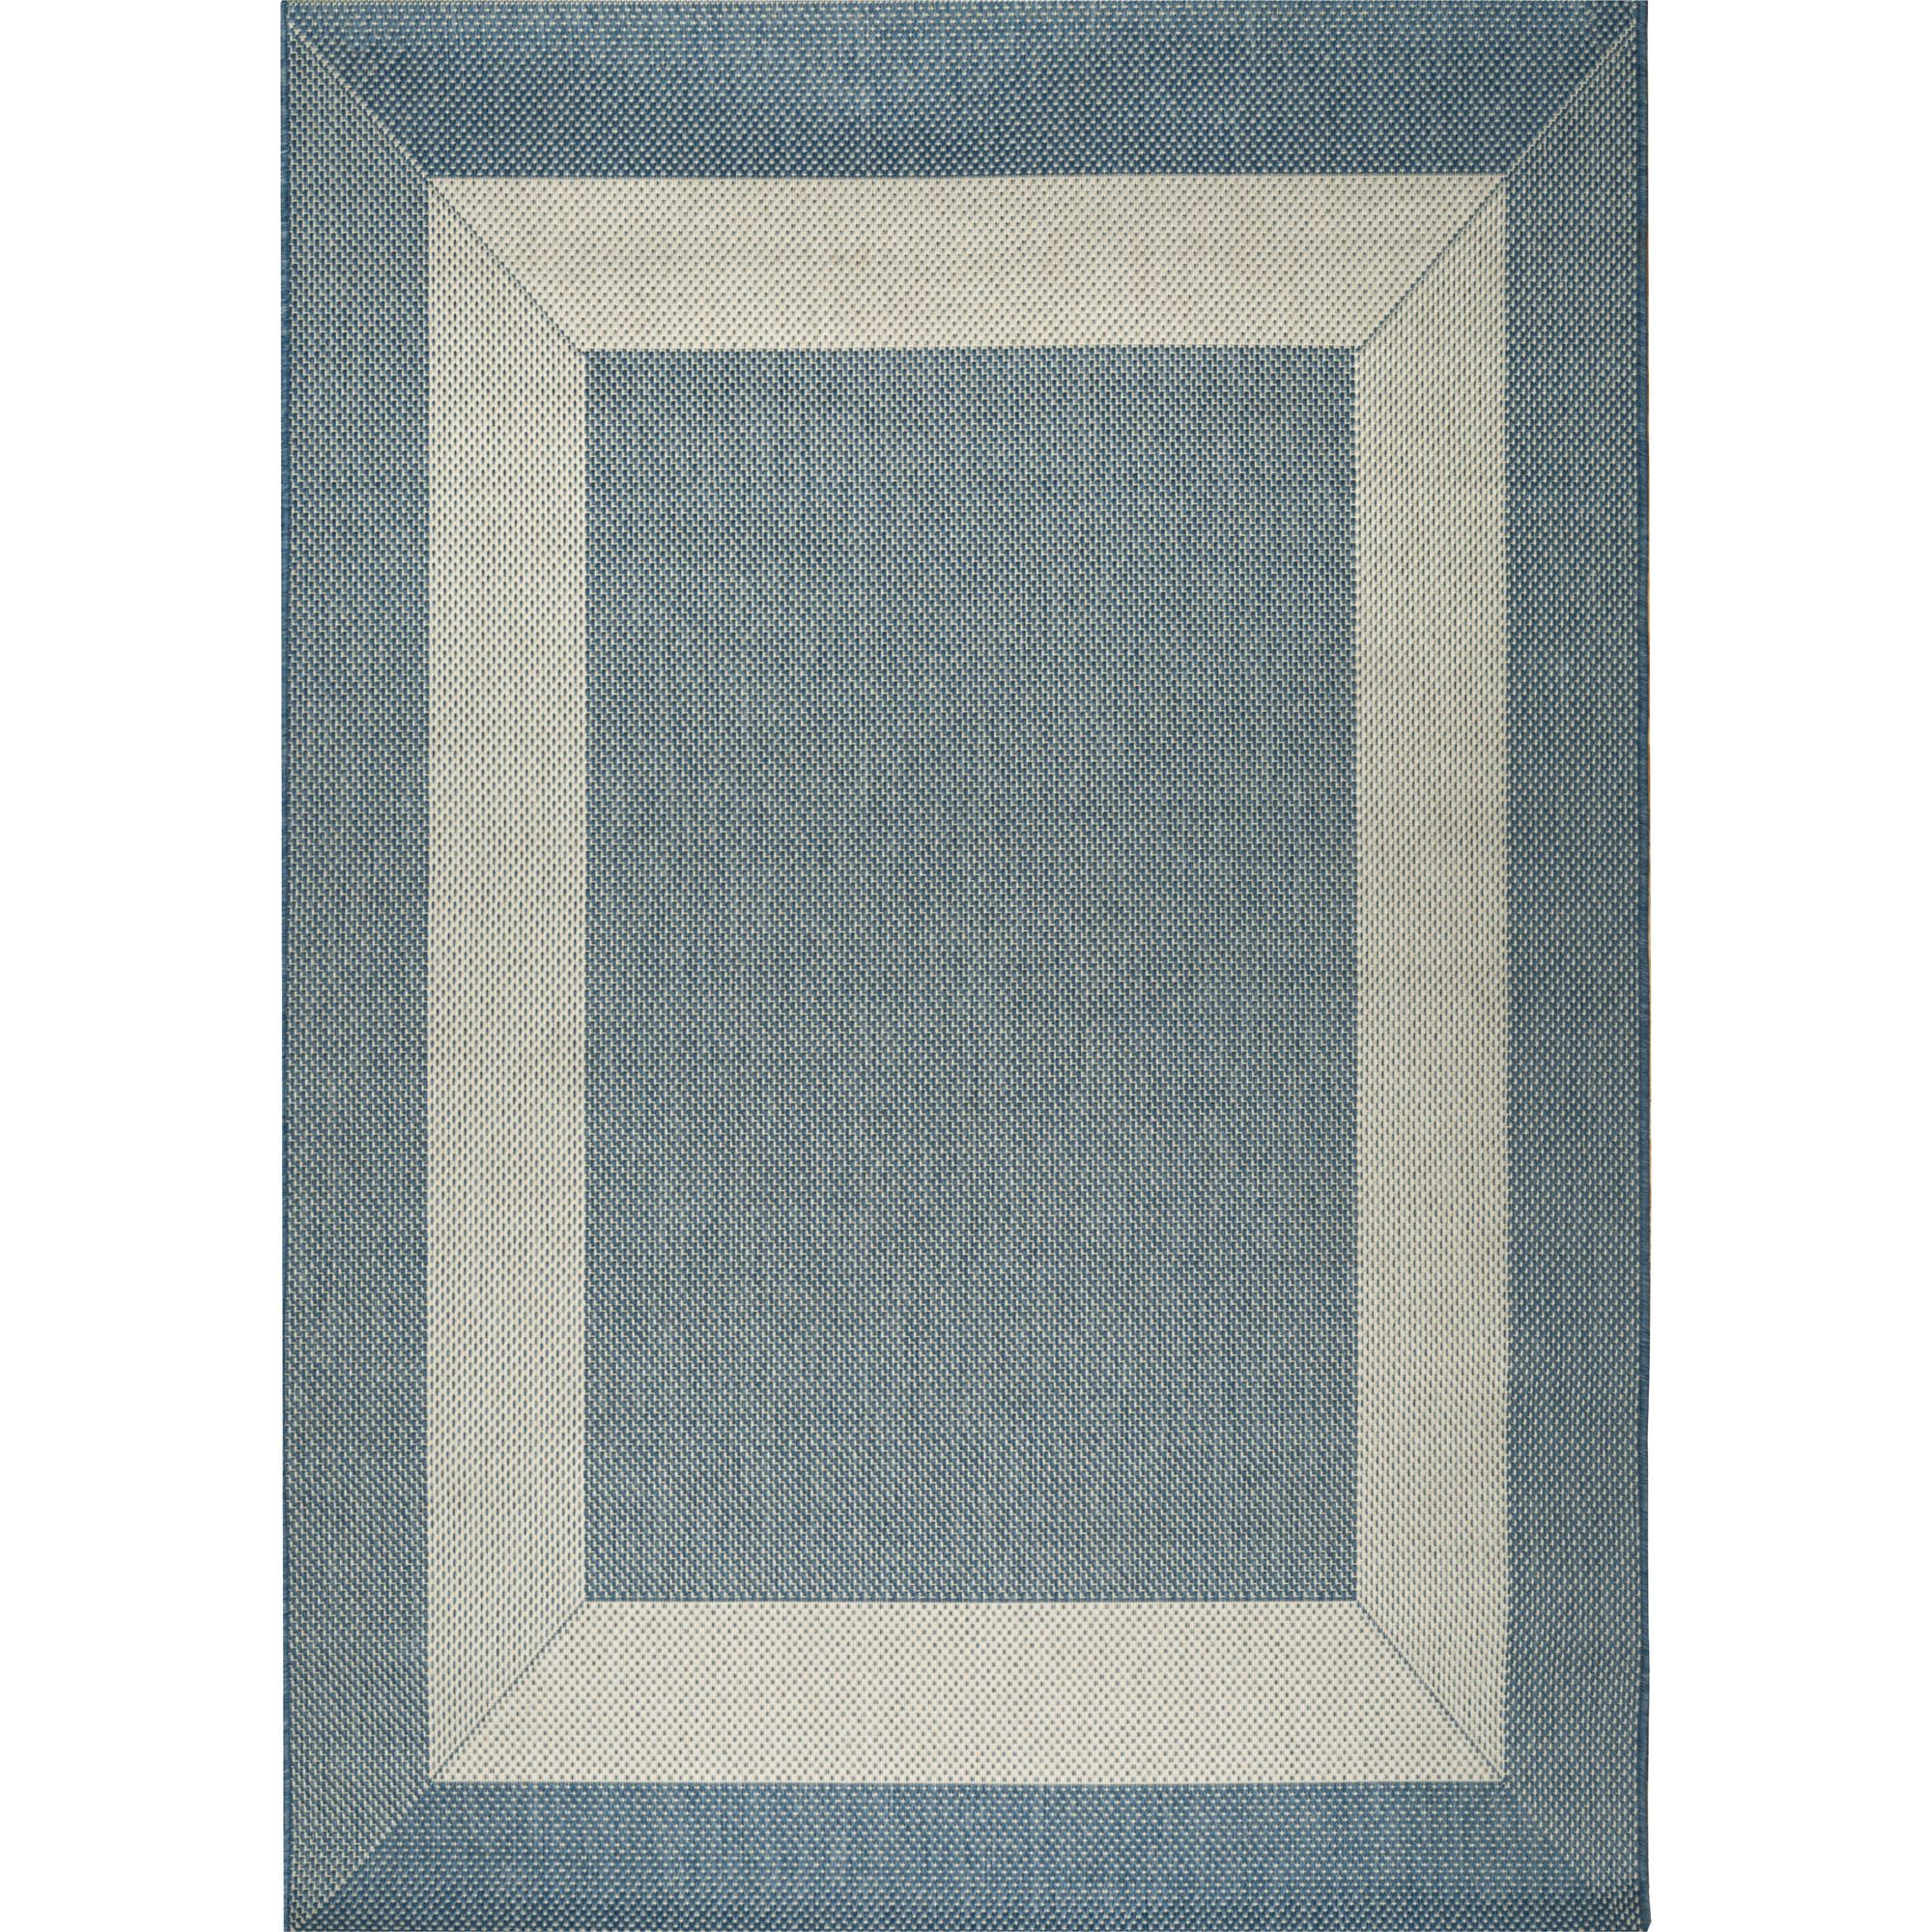 Blue and Champagne Boardwalk Outdoor Rugs on Sale